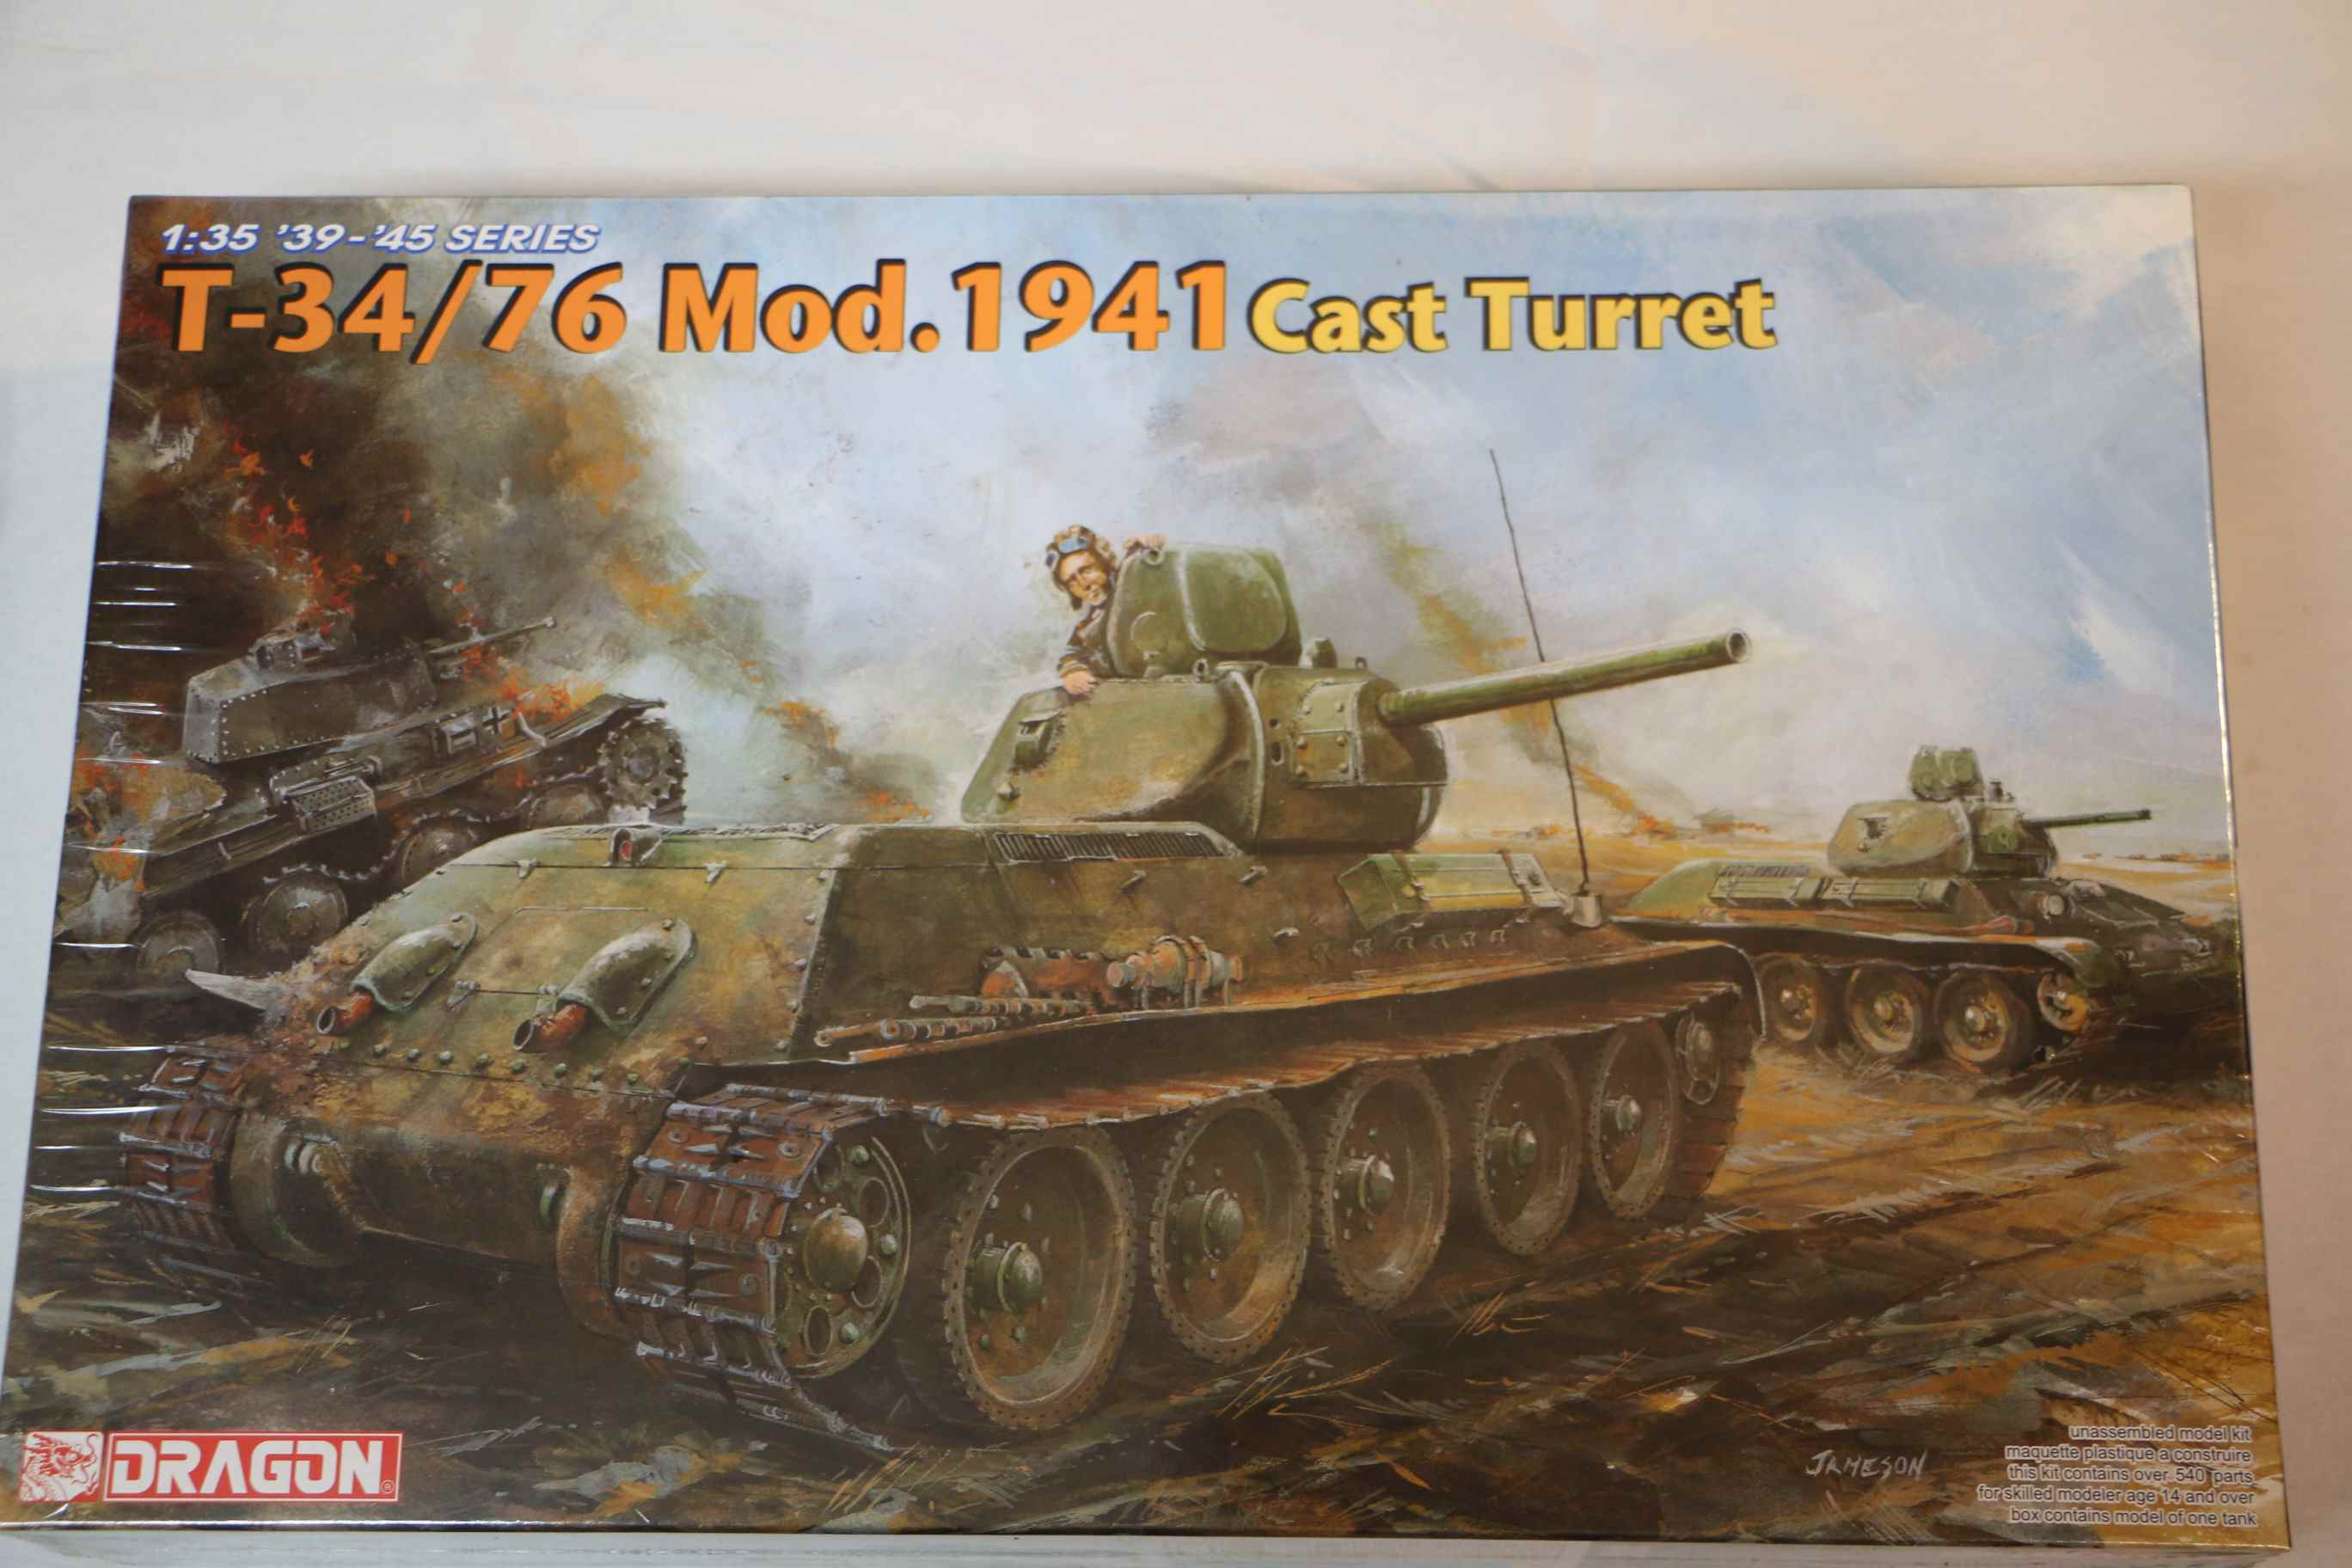 DRA6418 - Dragon 1/35 T34/76 Mod. 1941 Tank w/Cast Turret